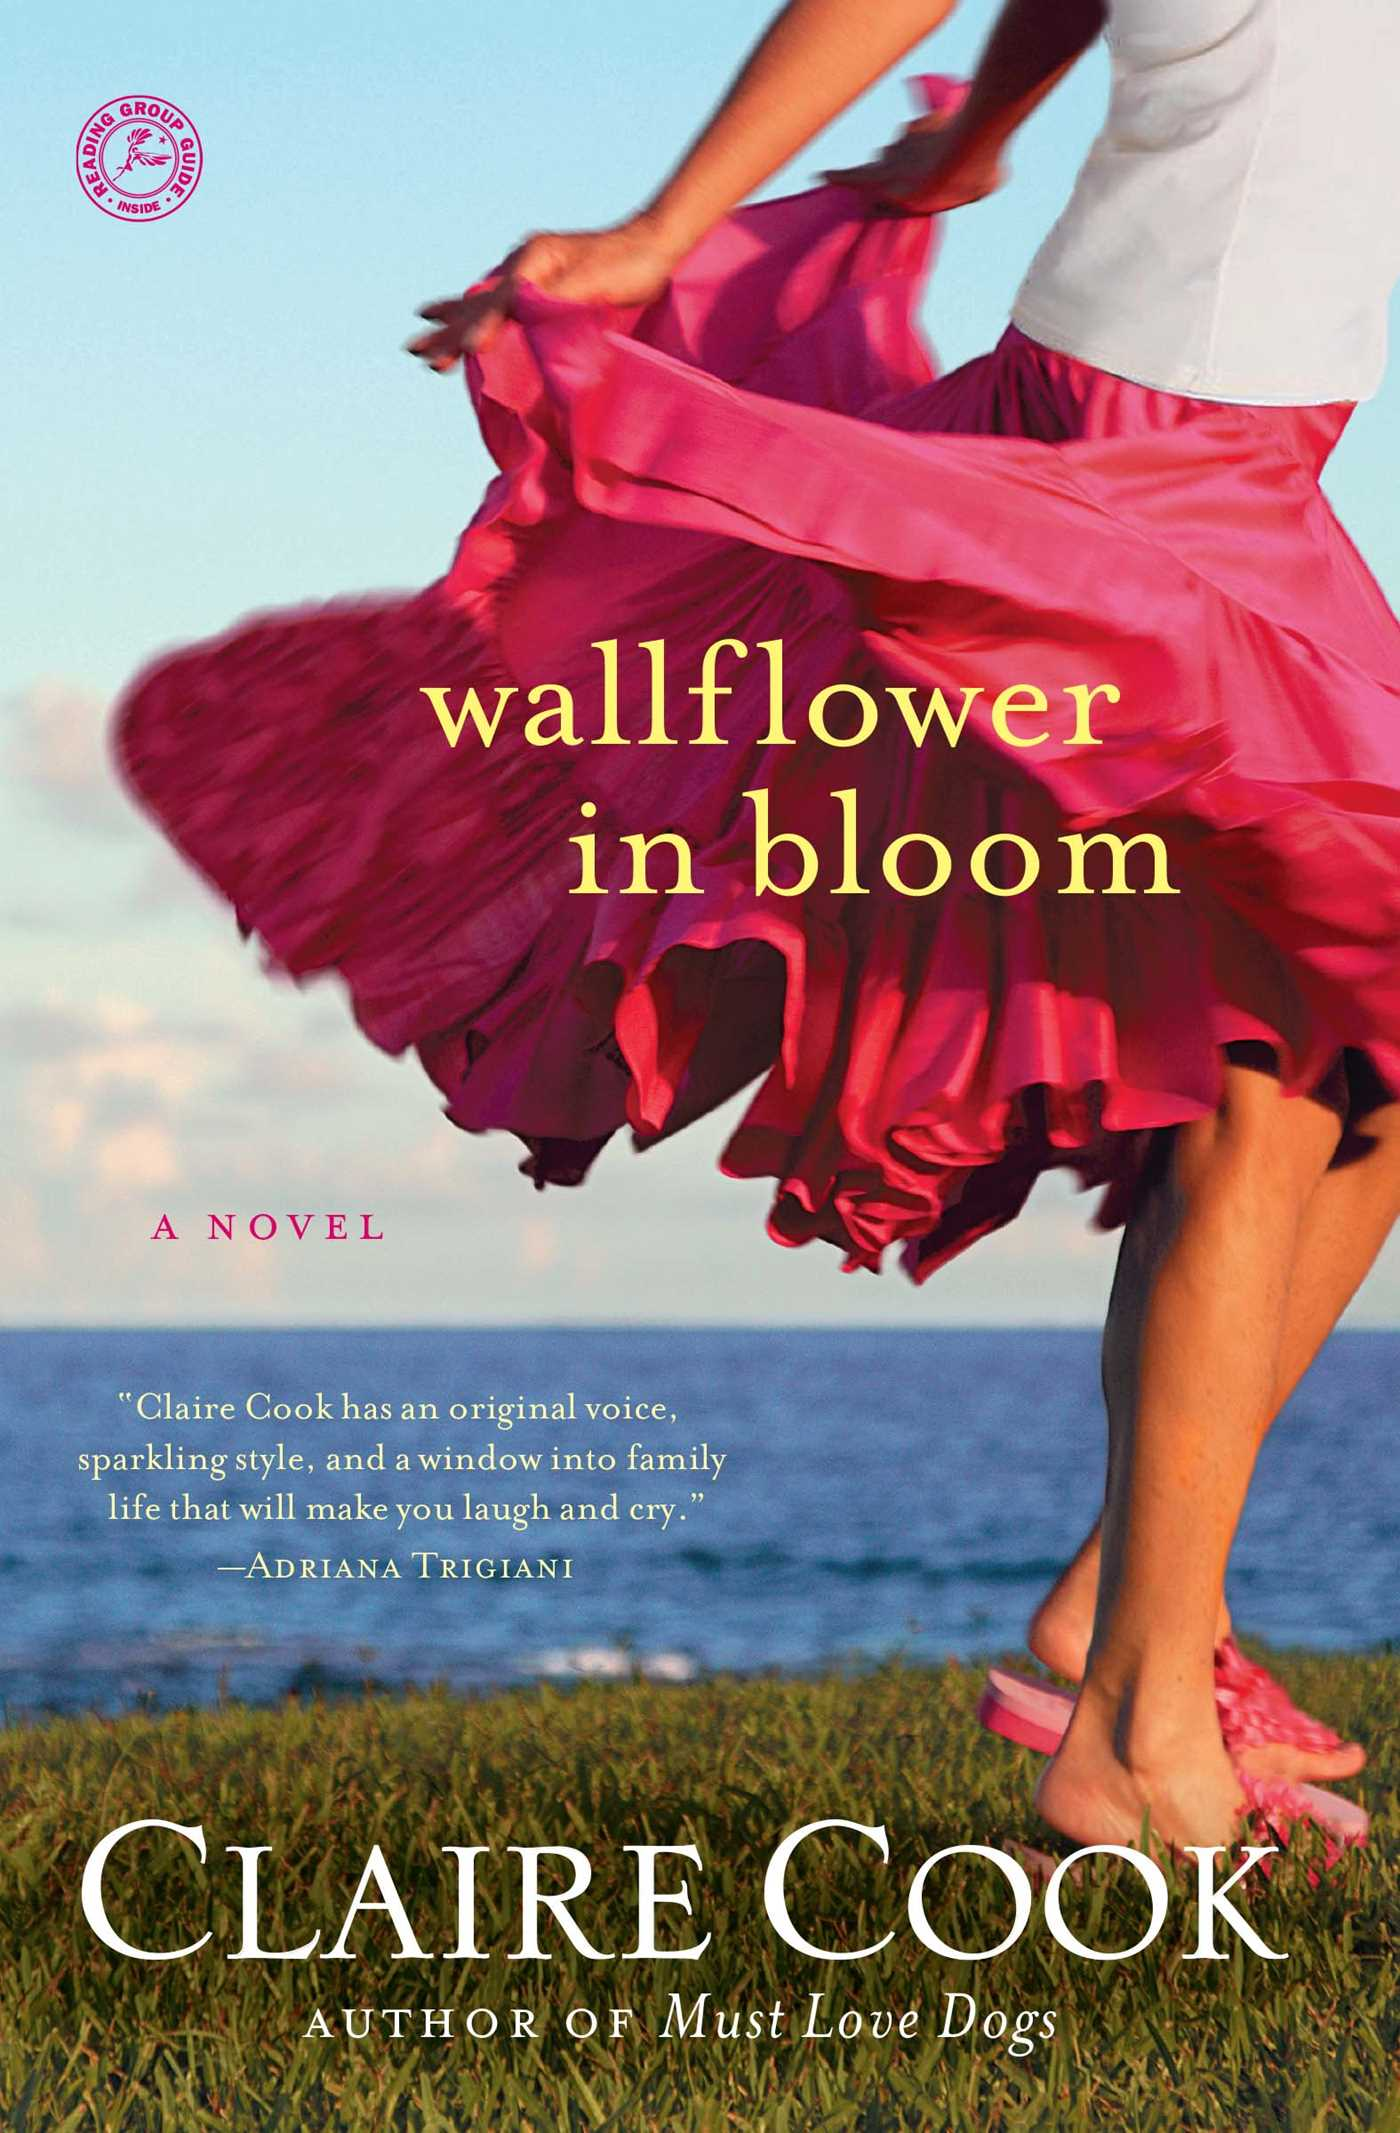 Wallflower-in-bloom-9781451672770_hr